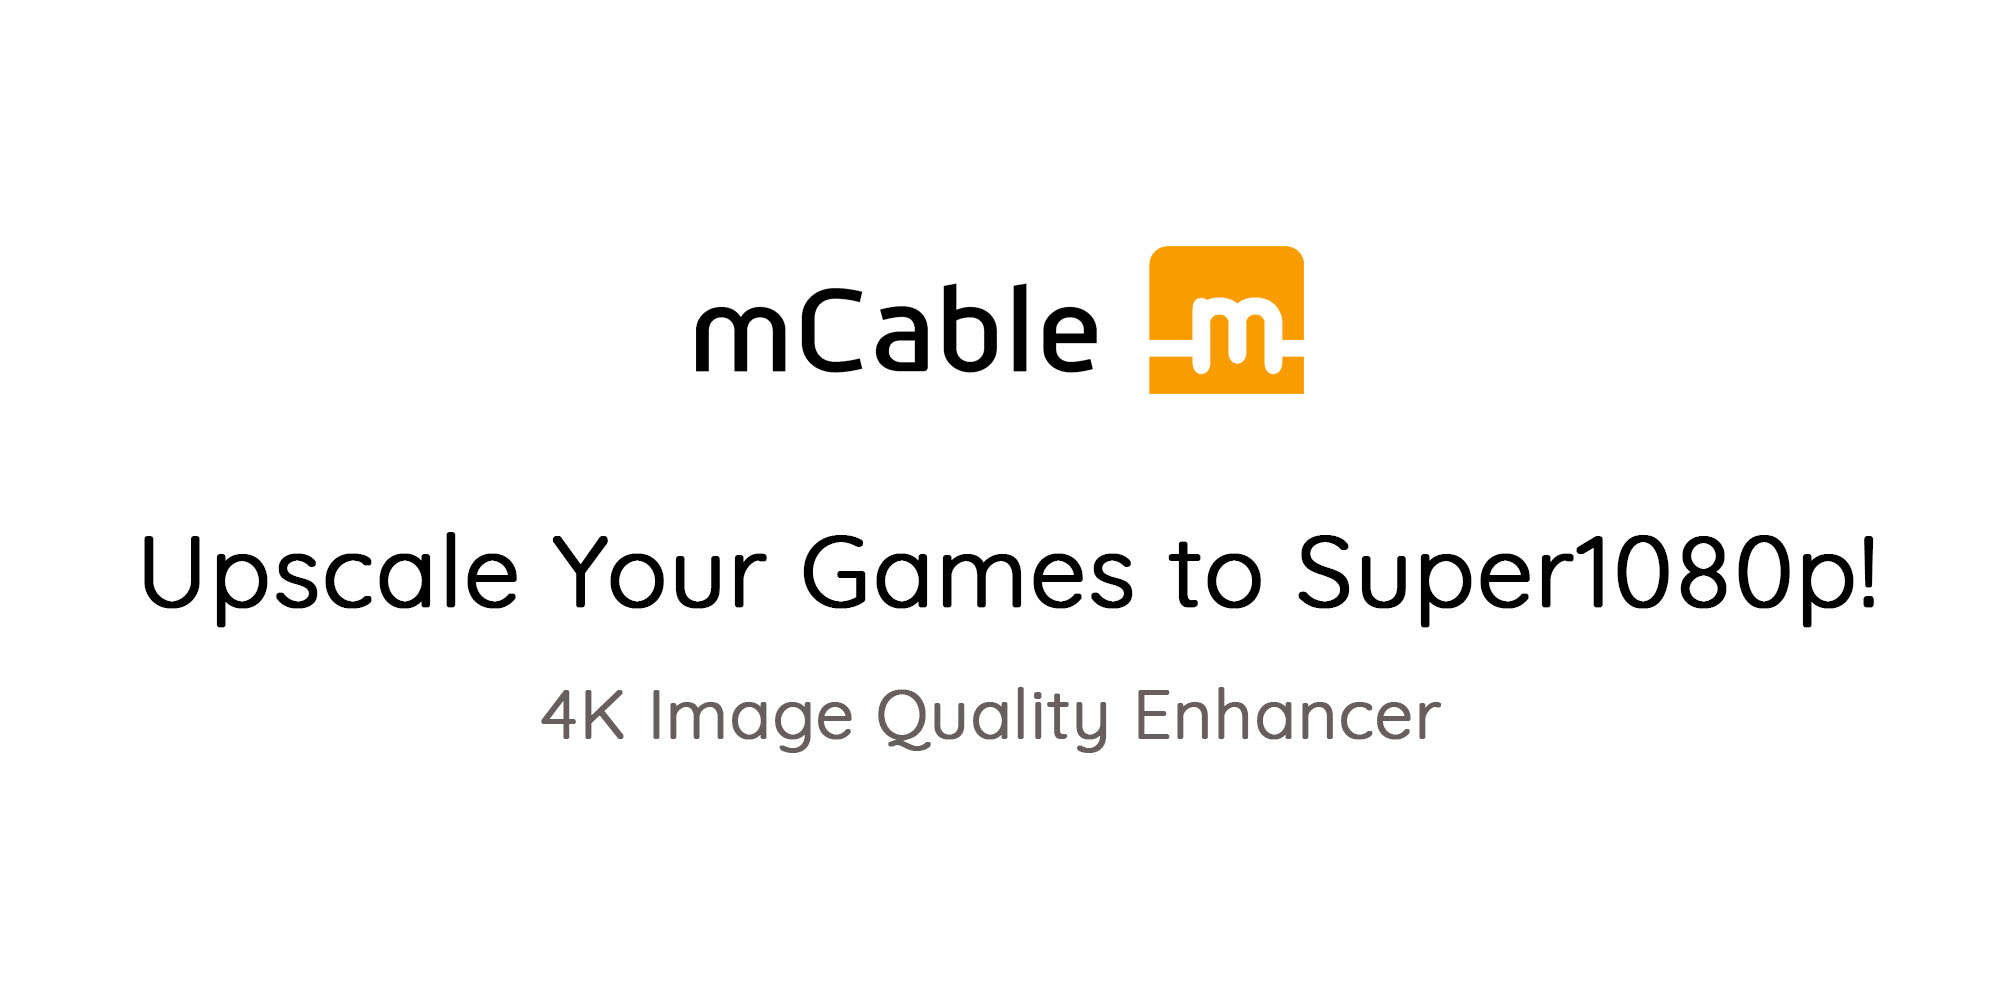 Upscale your games to Super1080p. 4K image quality enhancer.